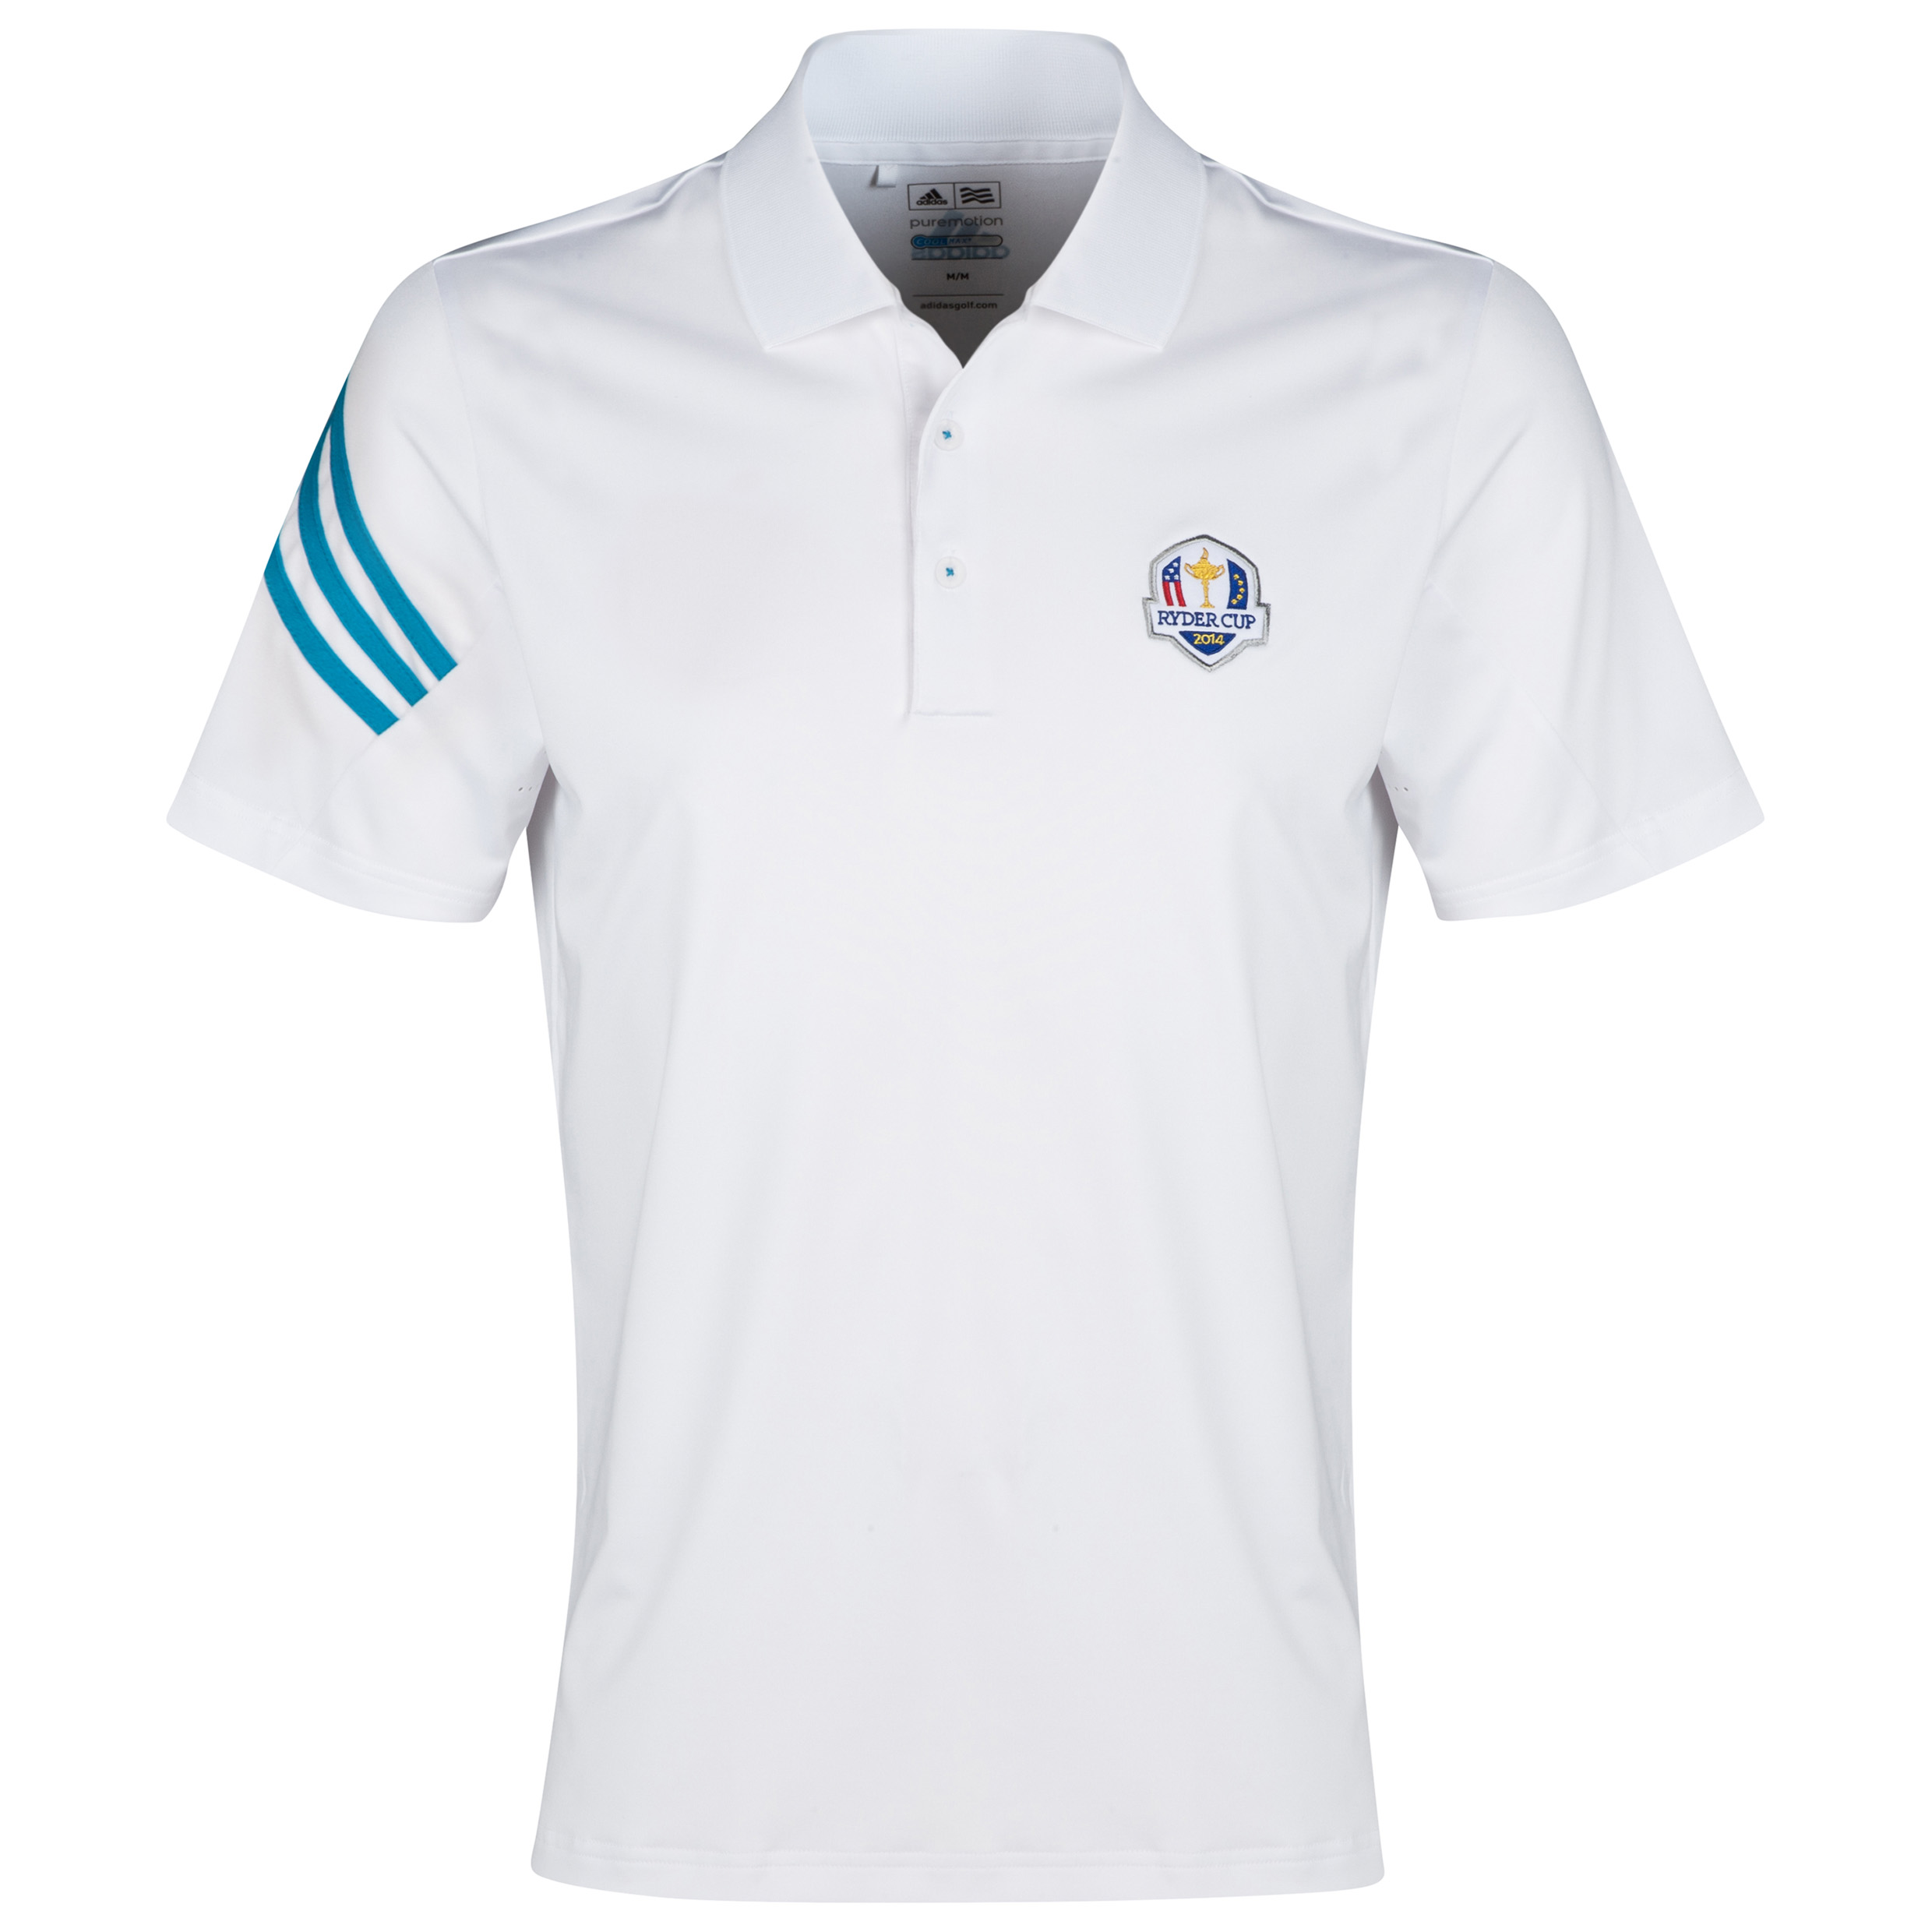 The 2014 Ryder Cup adidas ClimaLite 3-Stripes Polo White